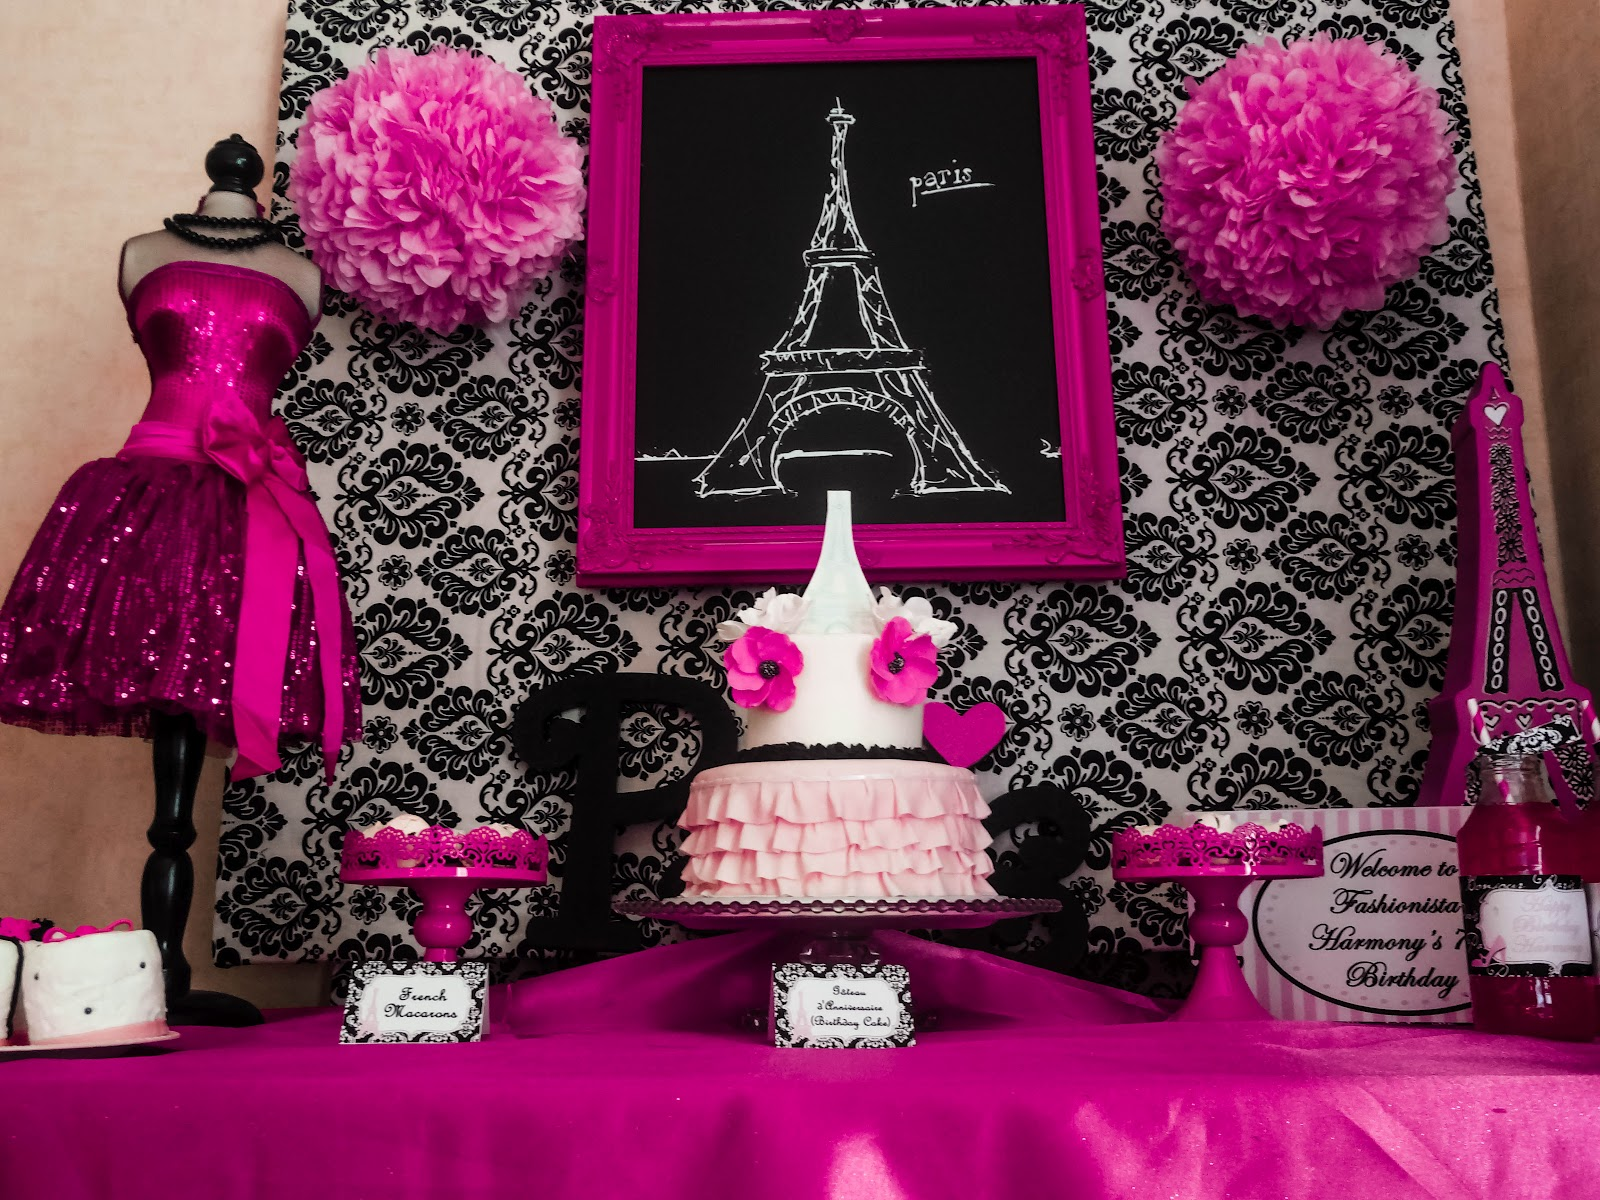 Capes & Crowns A Paris Party. Farmhouse Home Decor. Lake House Decorating Ideas. Las Vegas Rooms. Dining Room Seat Covers. Rustic Dining Room Table. Value City Living Room Sets. Glam Bedroom Decor. Where To Buy Locker Decorations